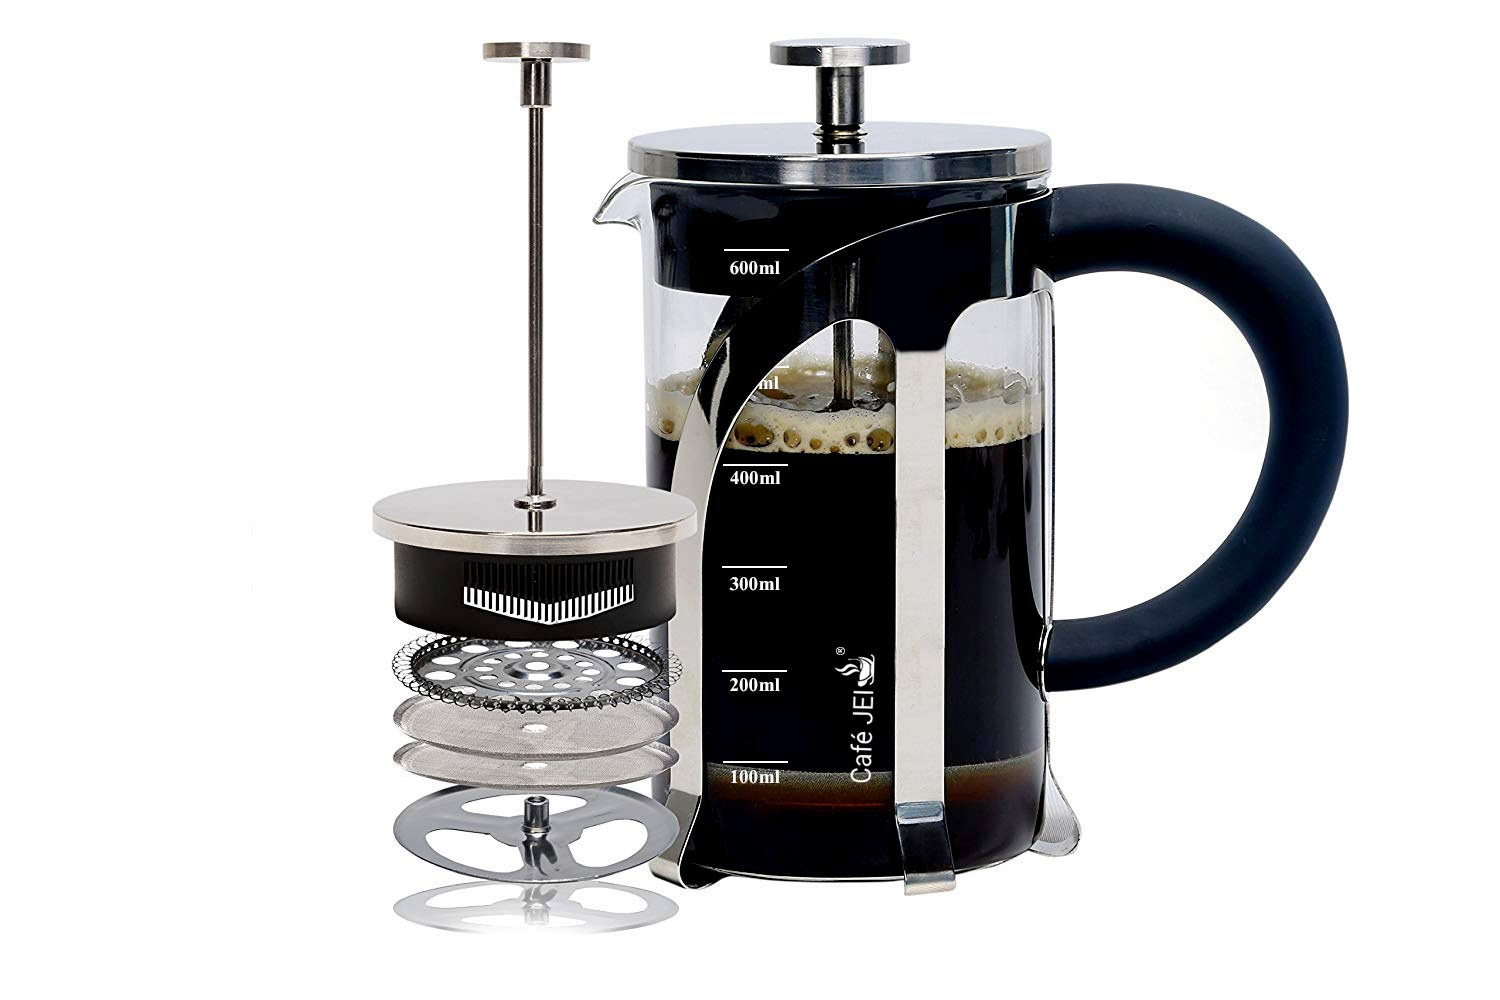 Cafe JEI French Press Coffee and Tea Maker 600ml with 4 Level Filtration System, Heat Resistant Borosilicate Glass, Included Coasters Set of 4 (Silver, 600ml)